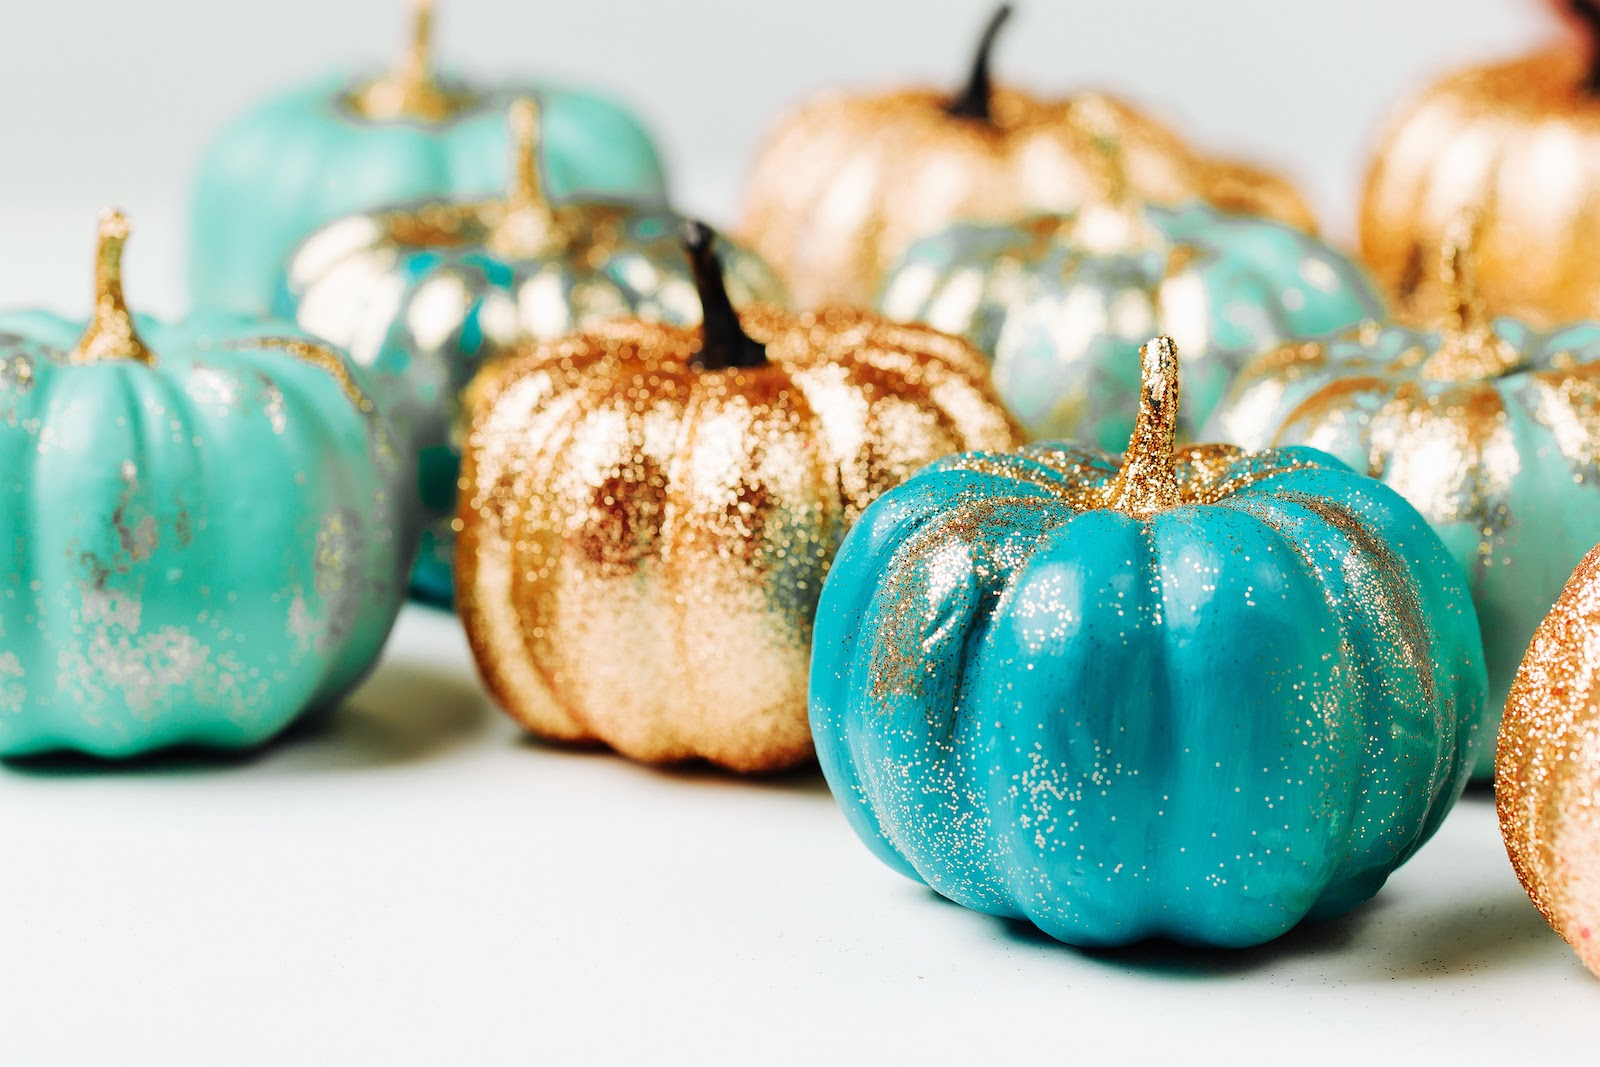 Thanksgiving decoration ideas for pops of color with painted pumpkins.